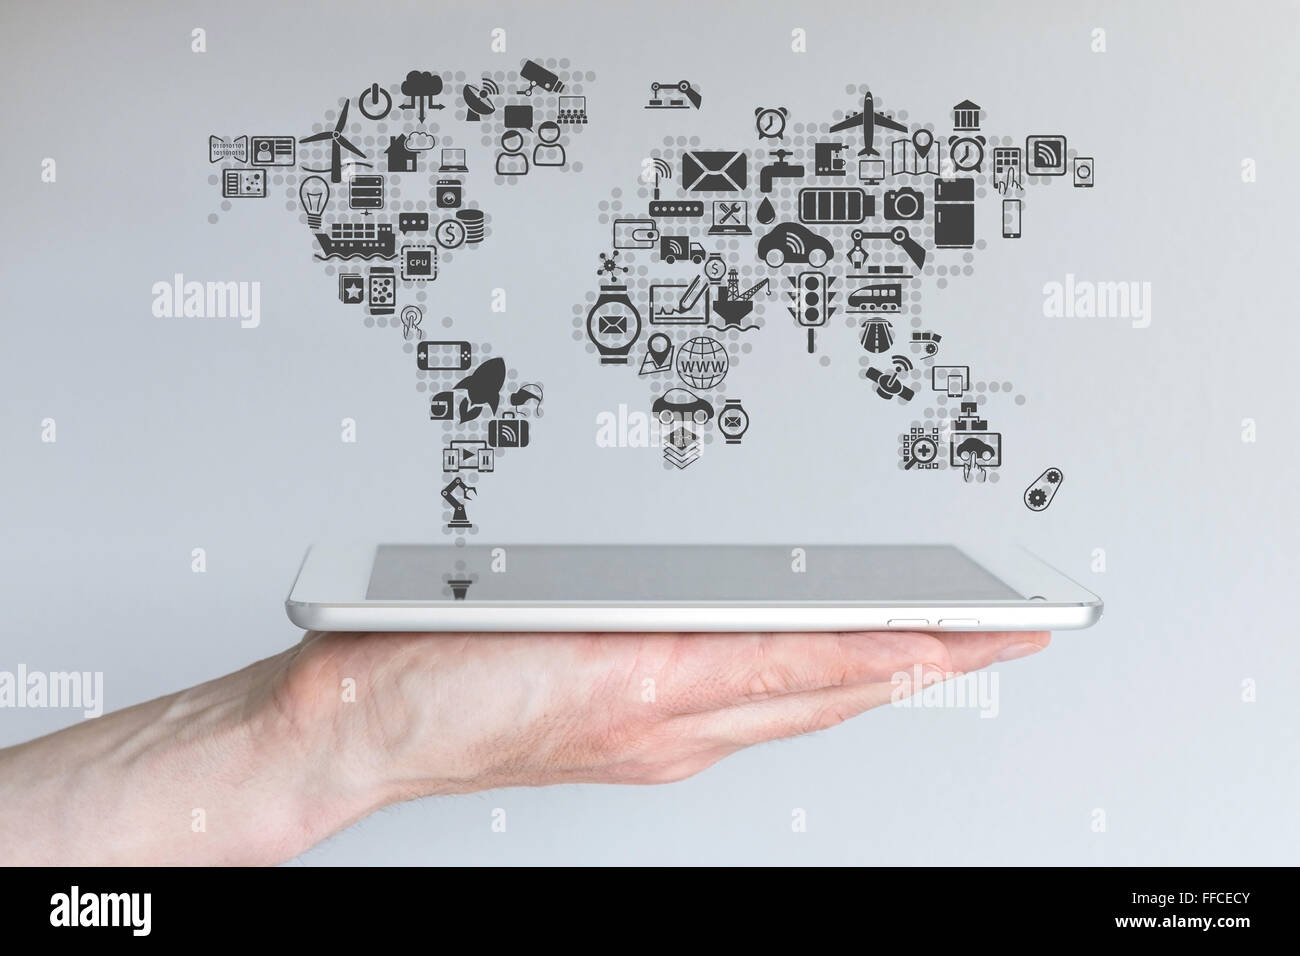 Global mobile devices and internet of things concept. Hand holding modern tablet or smart phone with neutral background. - Stock Image